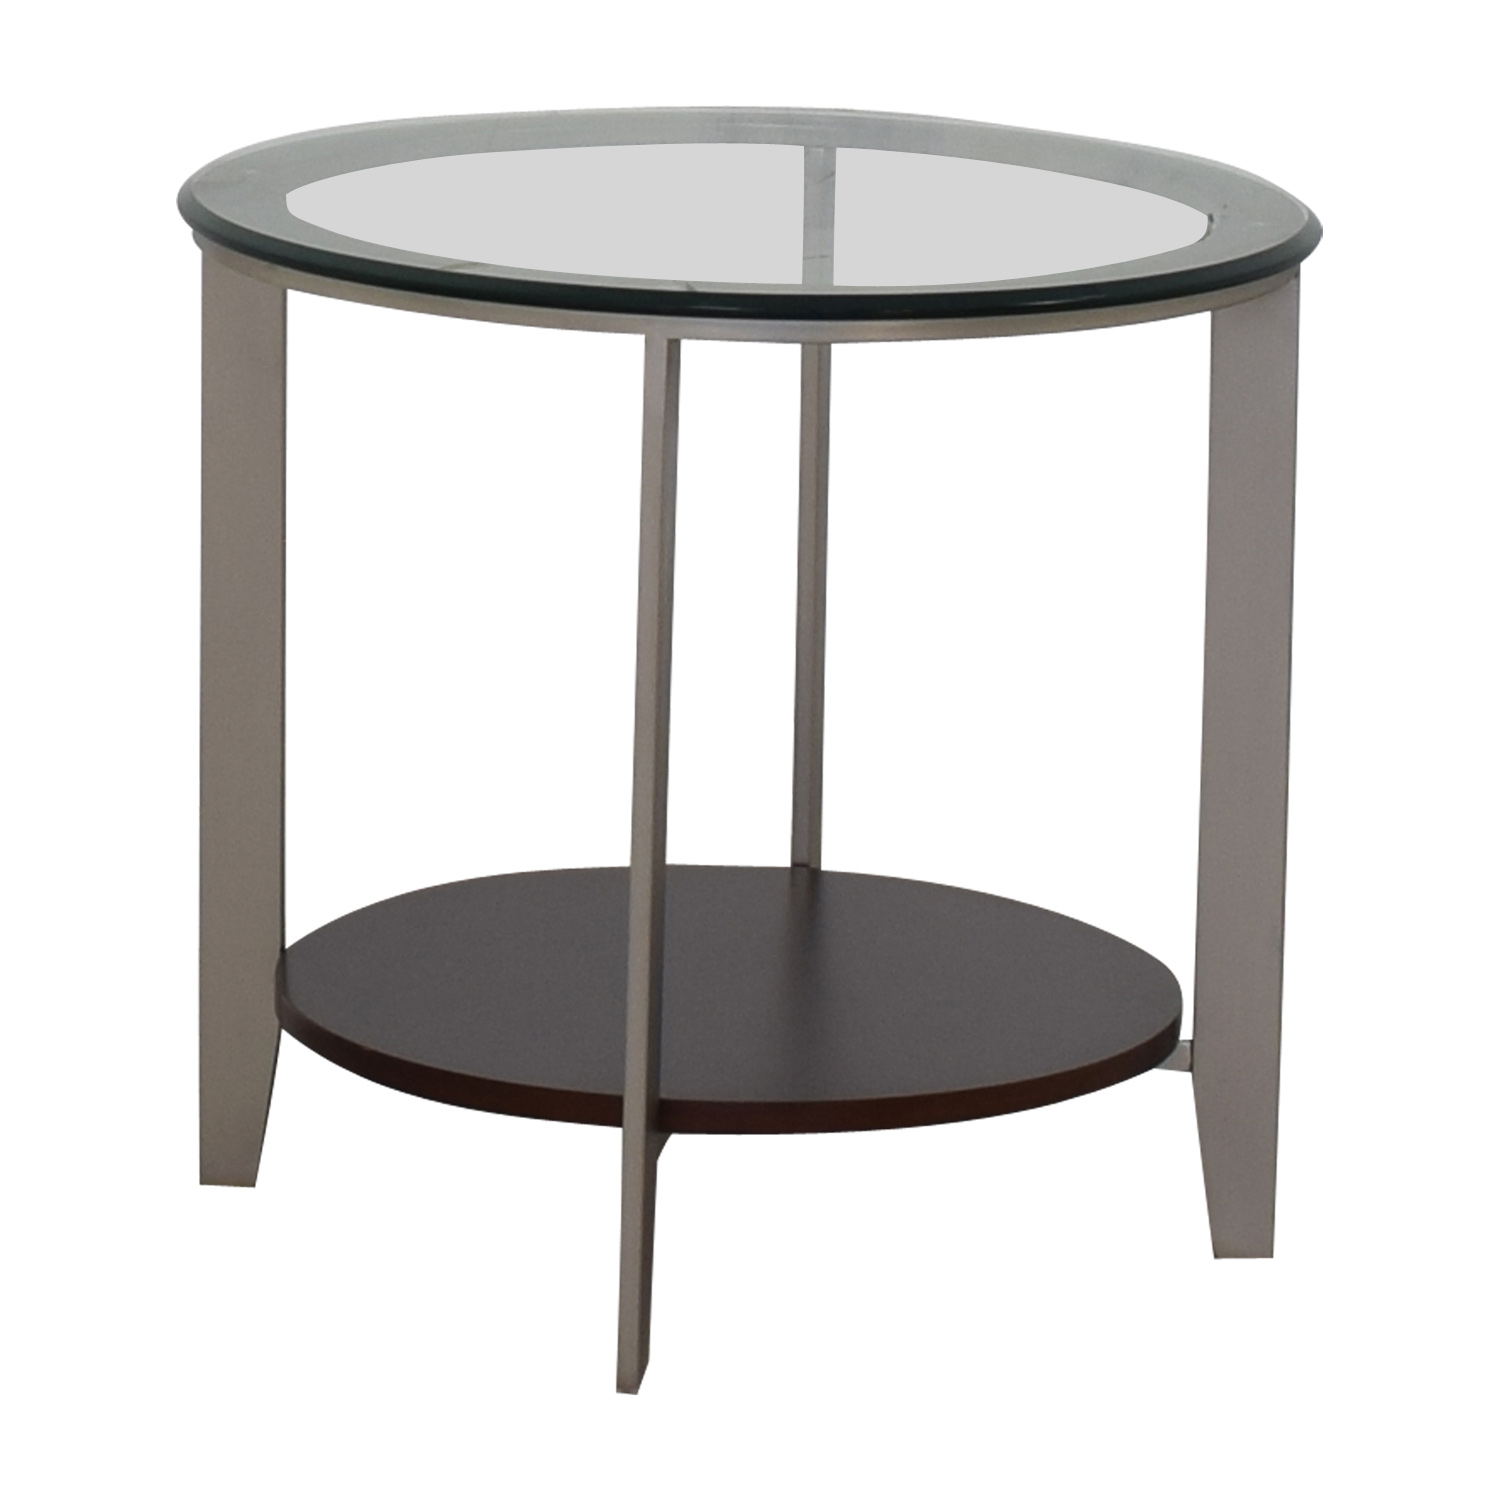 Ethan Allen Ethan Allen Elements Glass Top End Table coupon